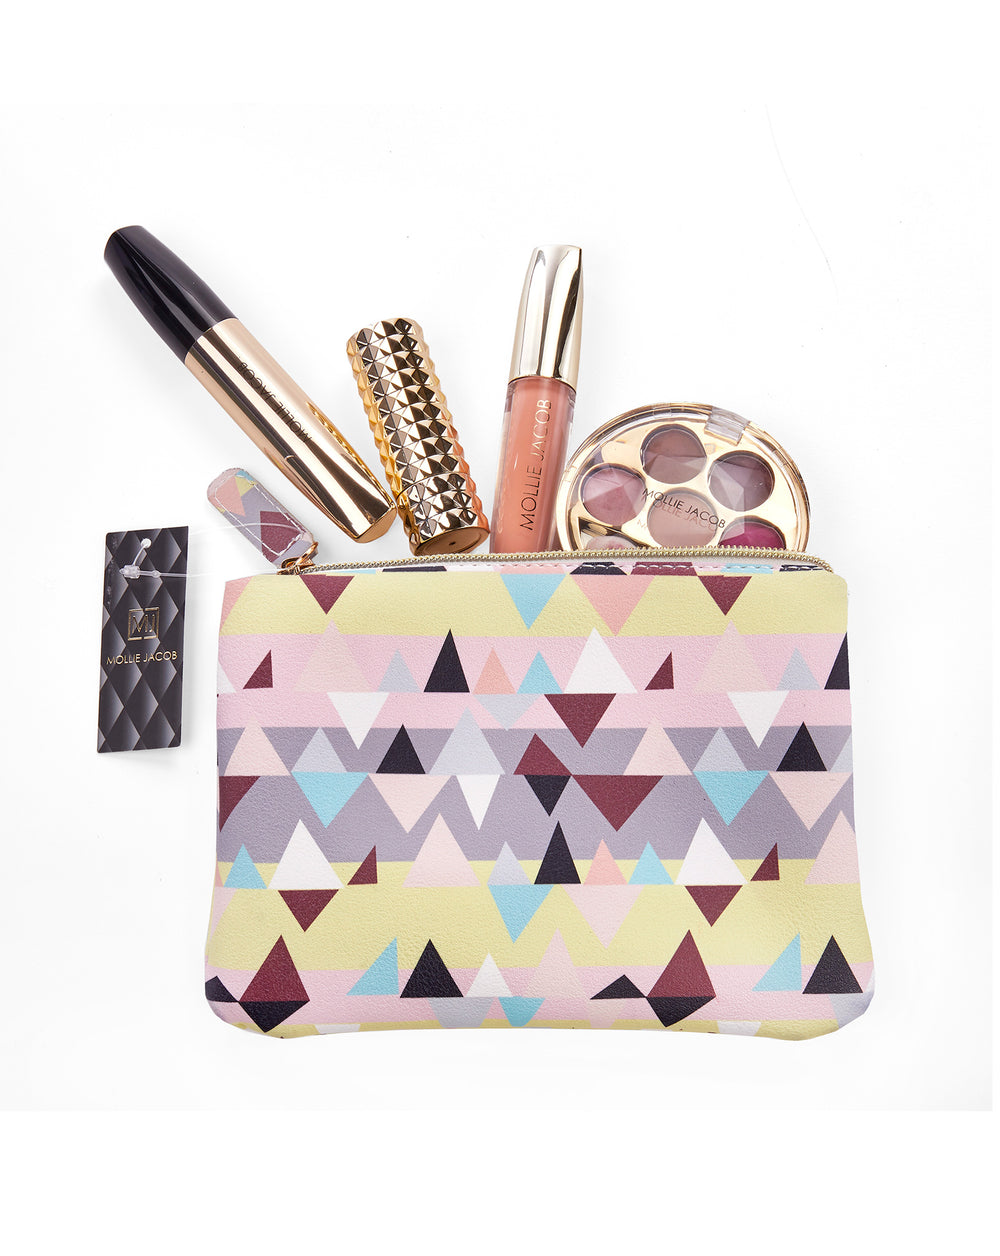 Aztec Chic Cosmetic Pouch